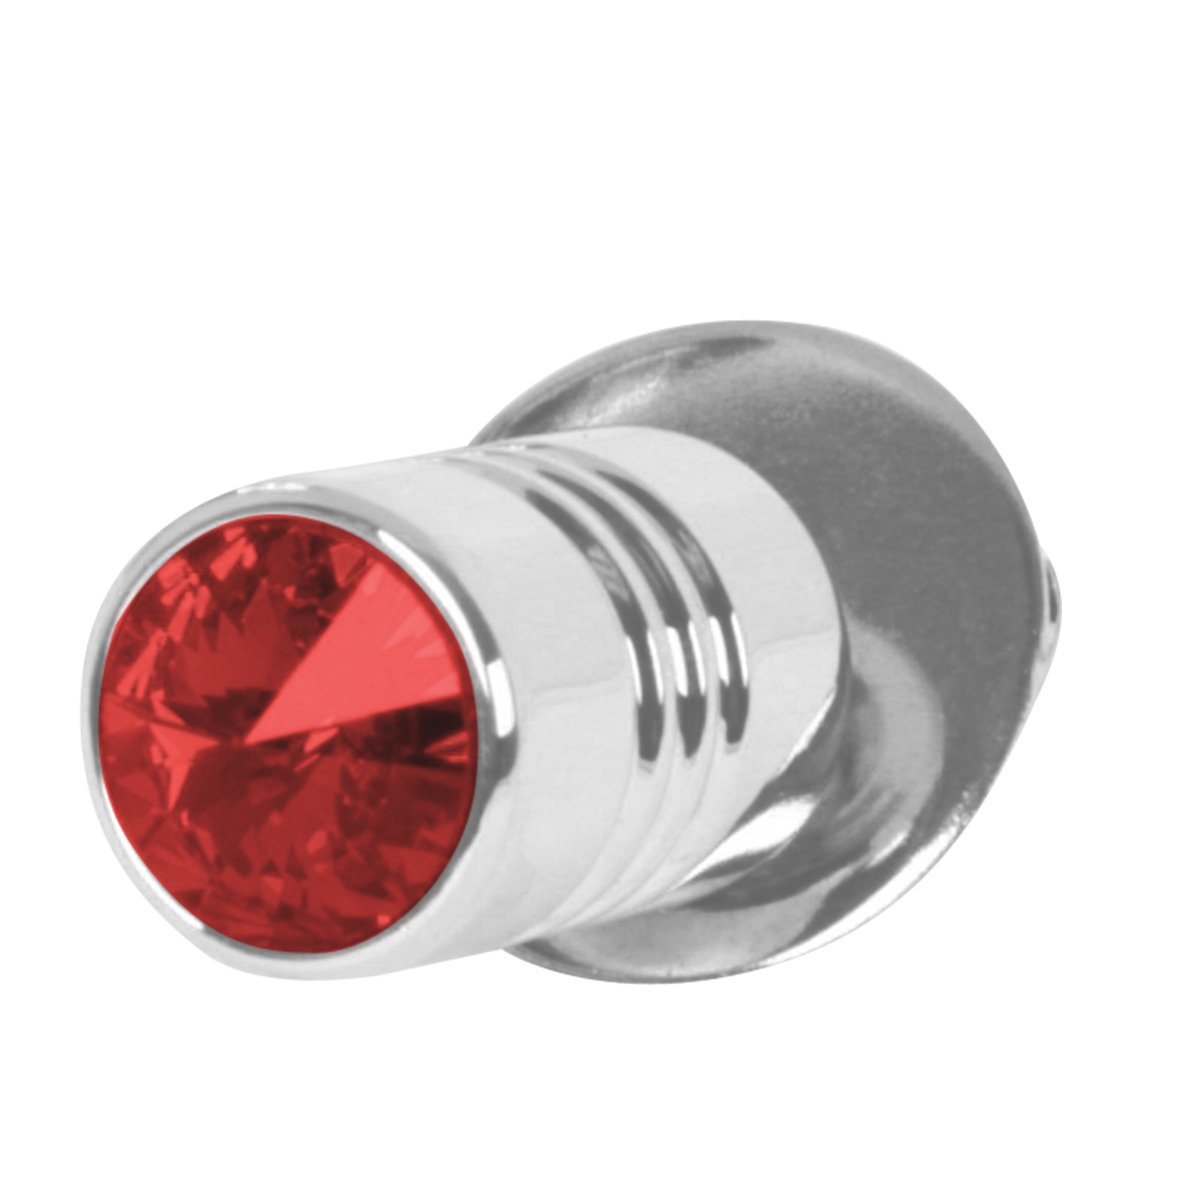 Grand General 50855 Chrome Aluminum License Plate Fastener with Red Crystal